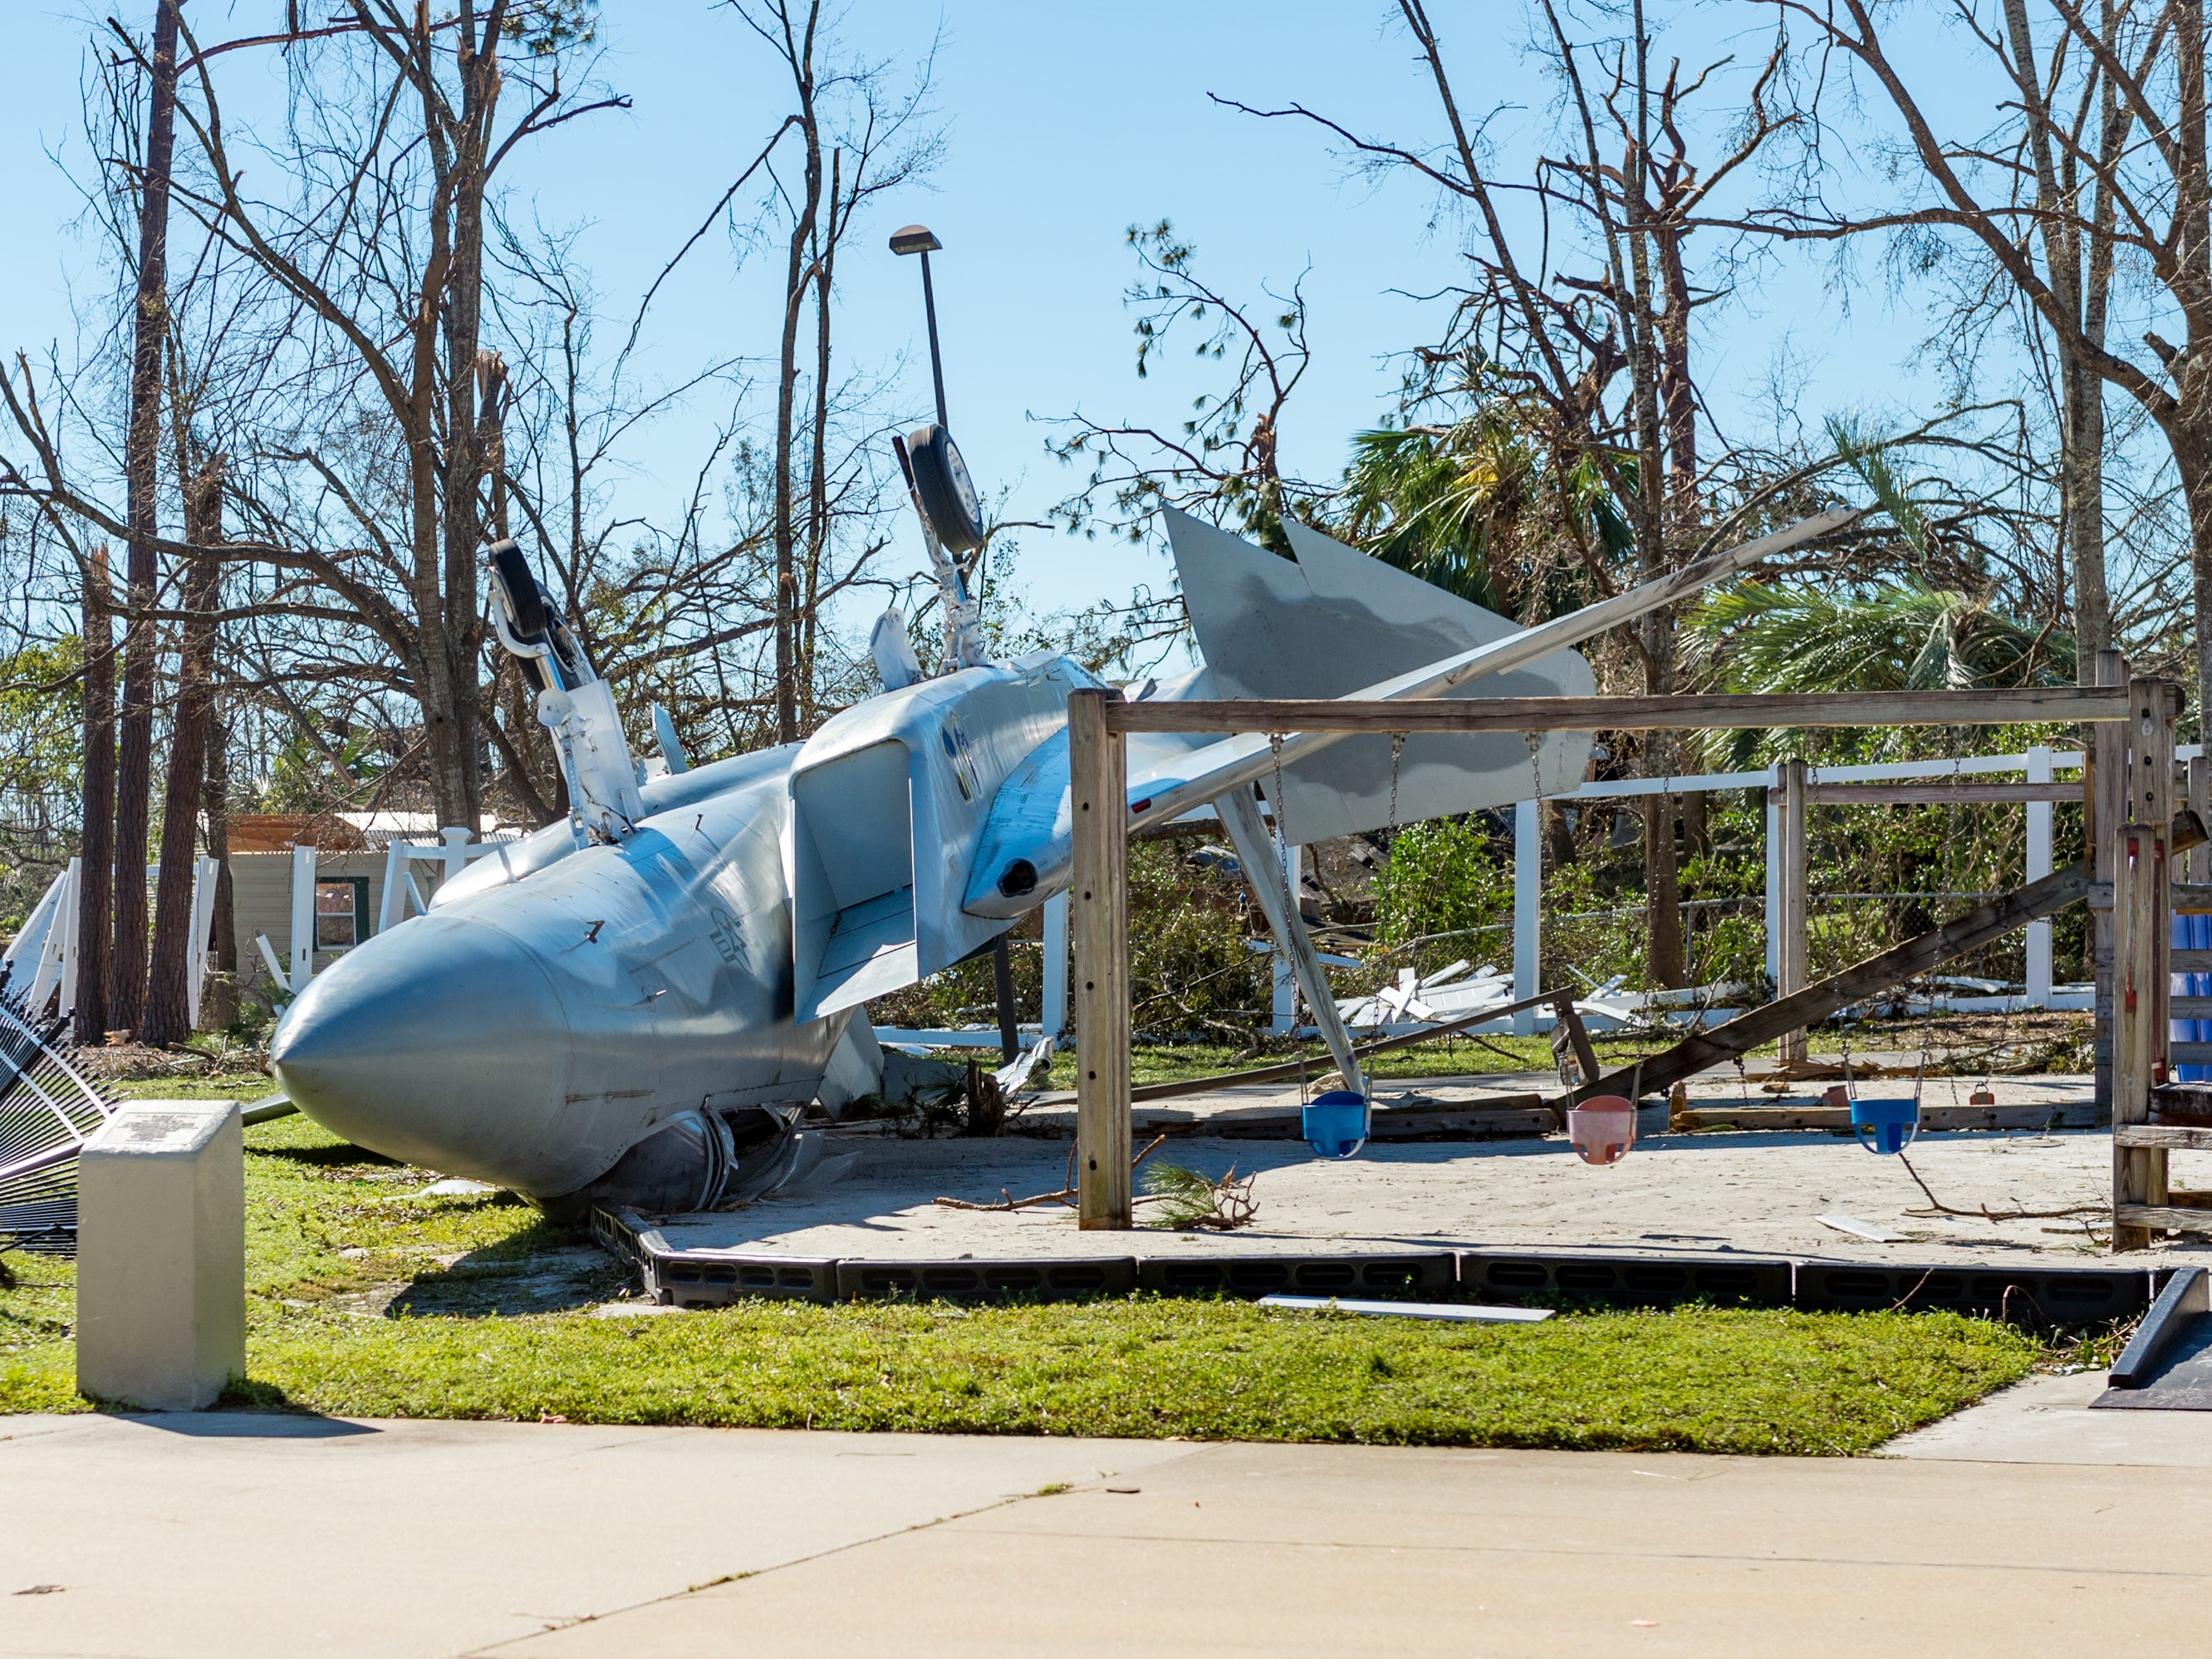 This is damage caused by Hurricane Michael in Panama City, Fla. Oct. 12, 2018. The aircraft was a display that turned over.